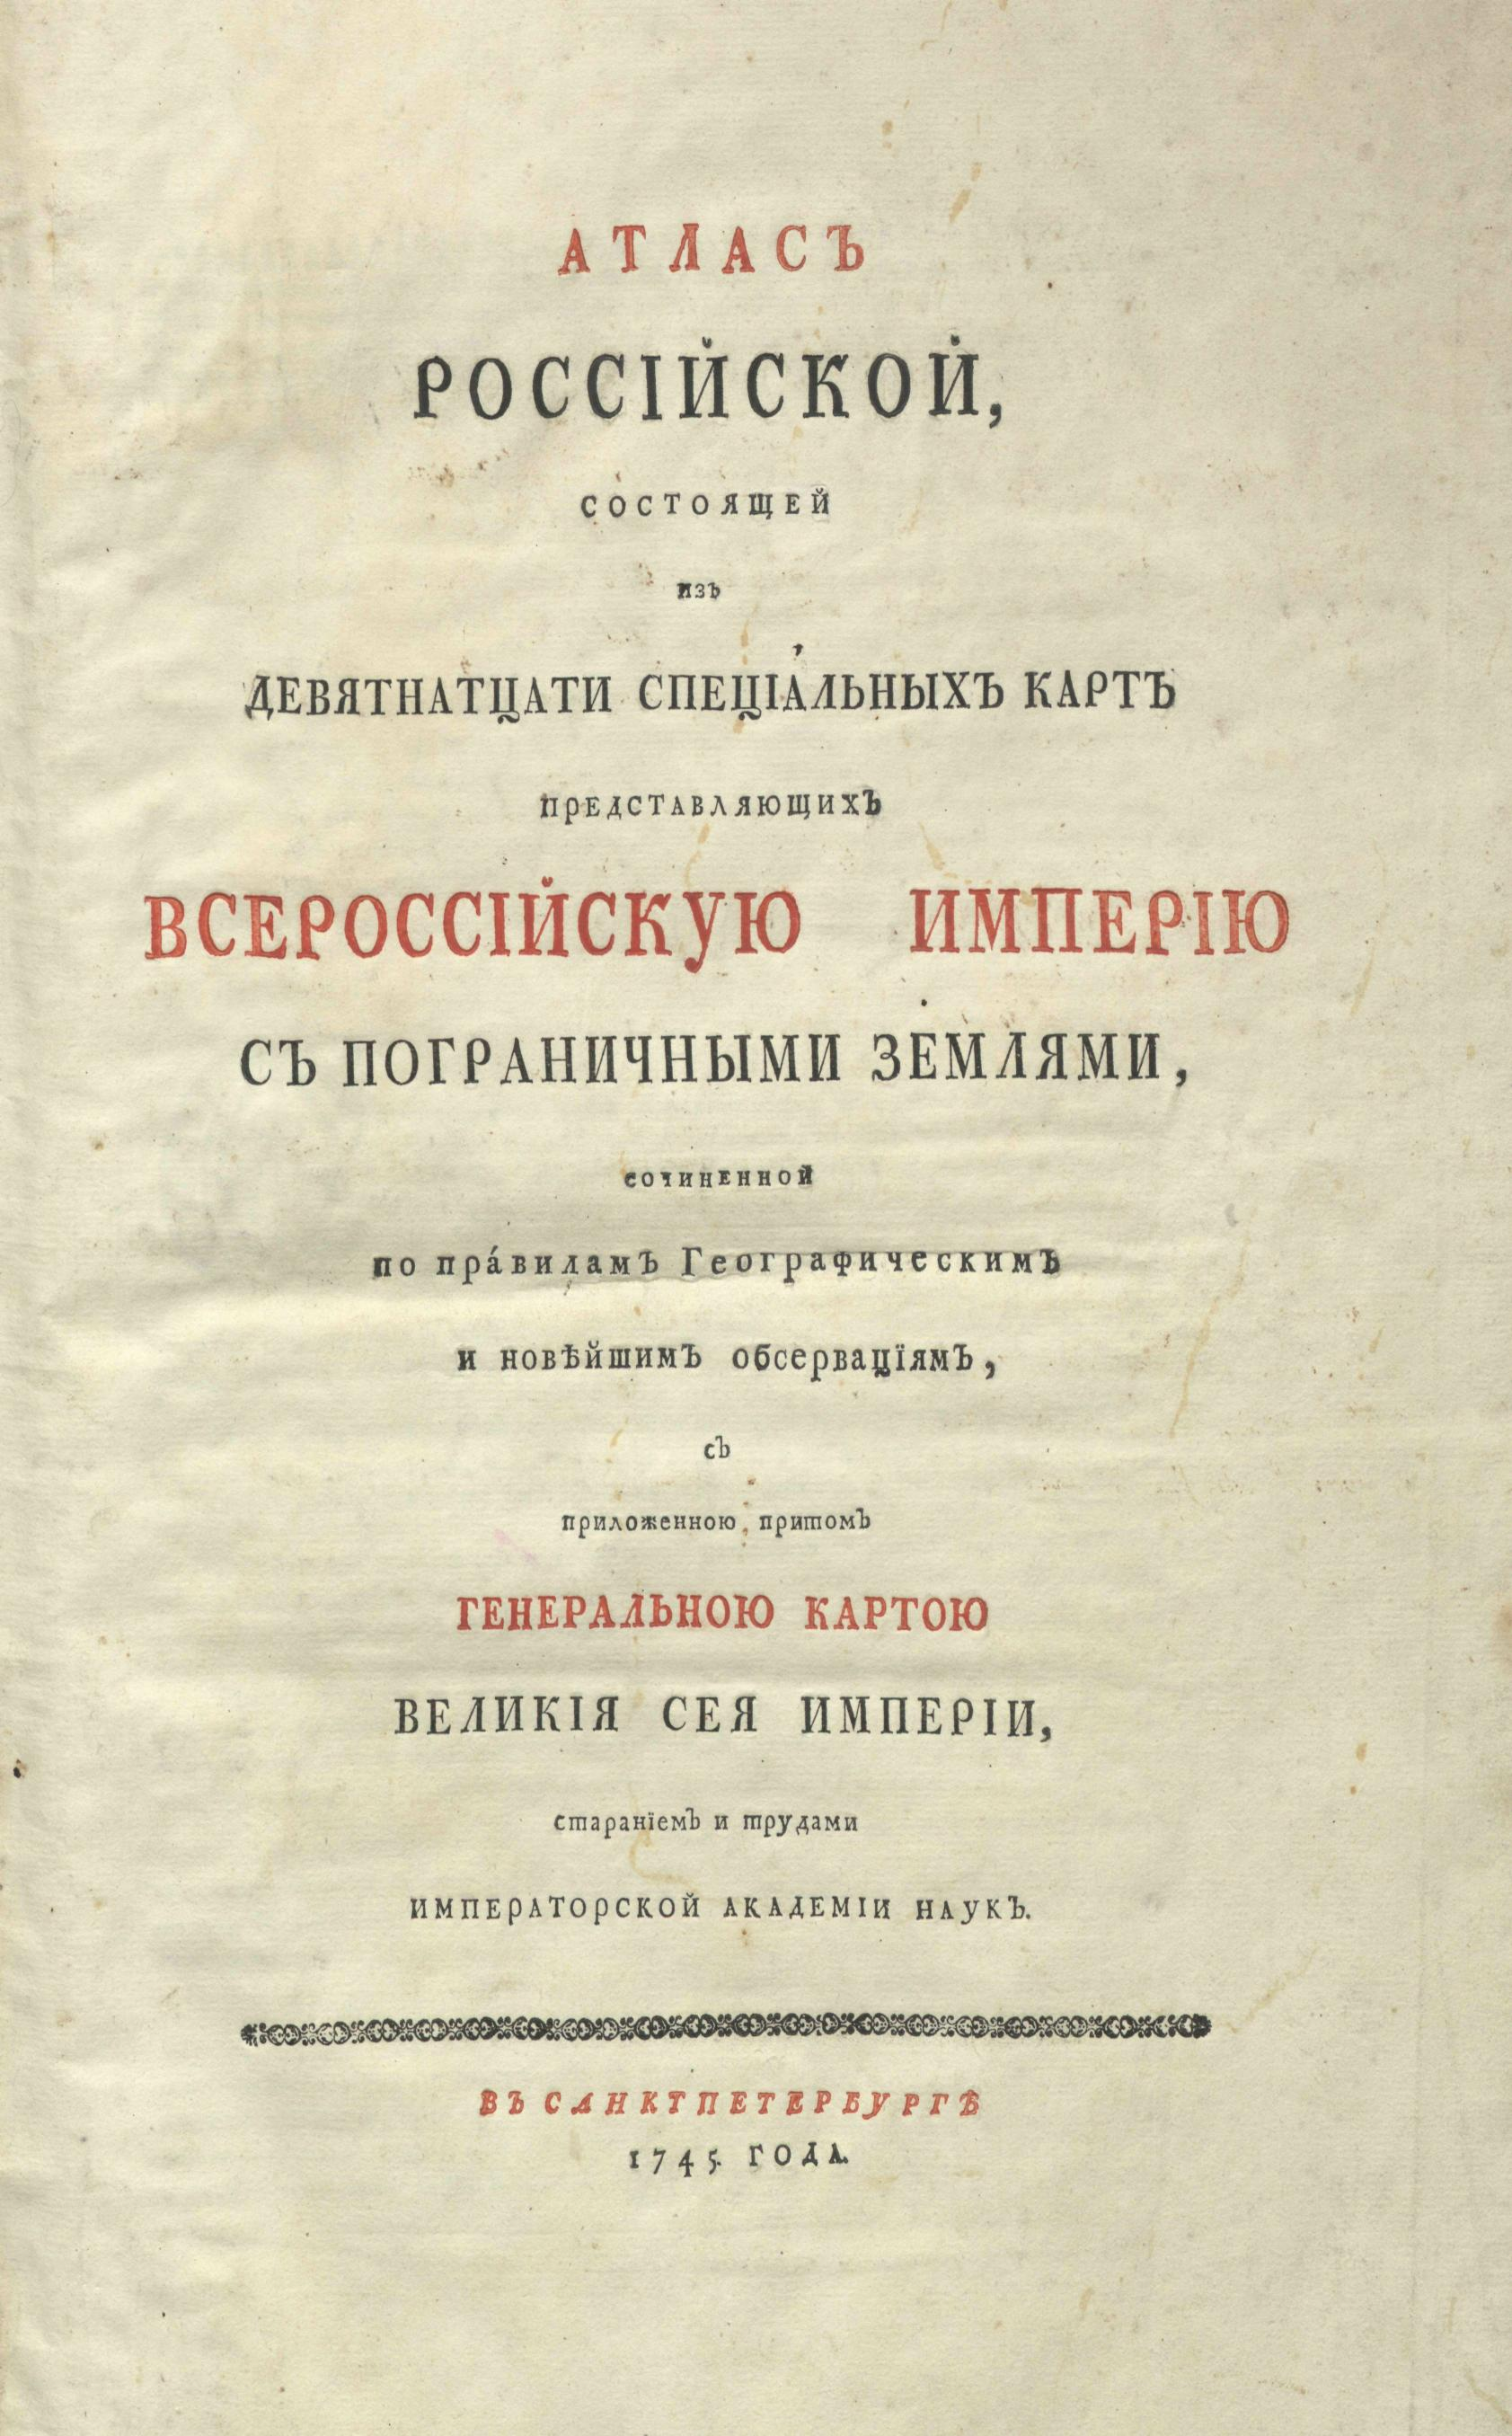 1309 Atlas_of_Russian_Empire_(1745)._Title-page